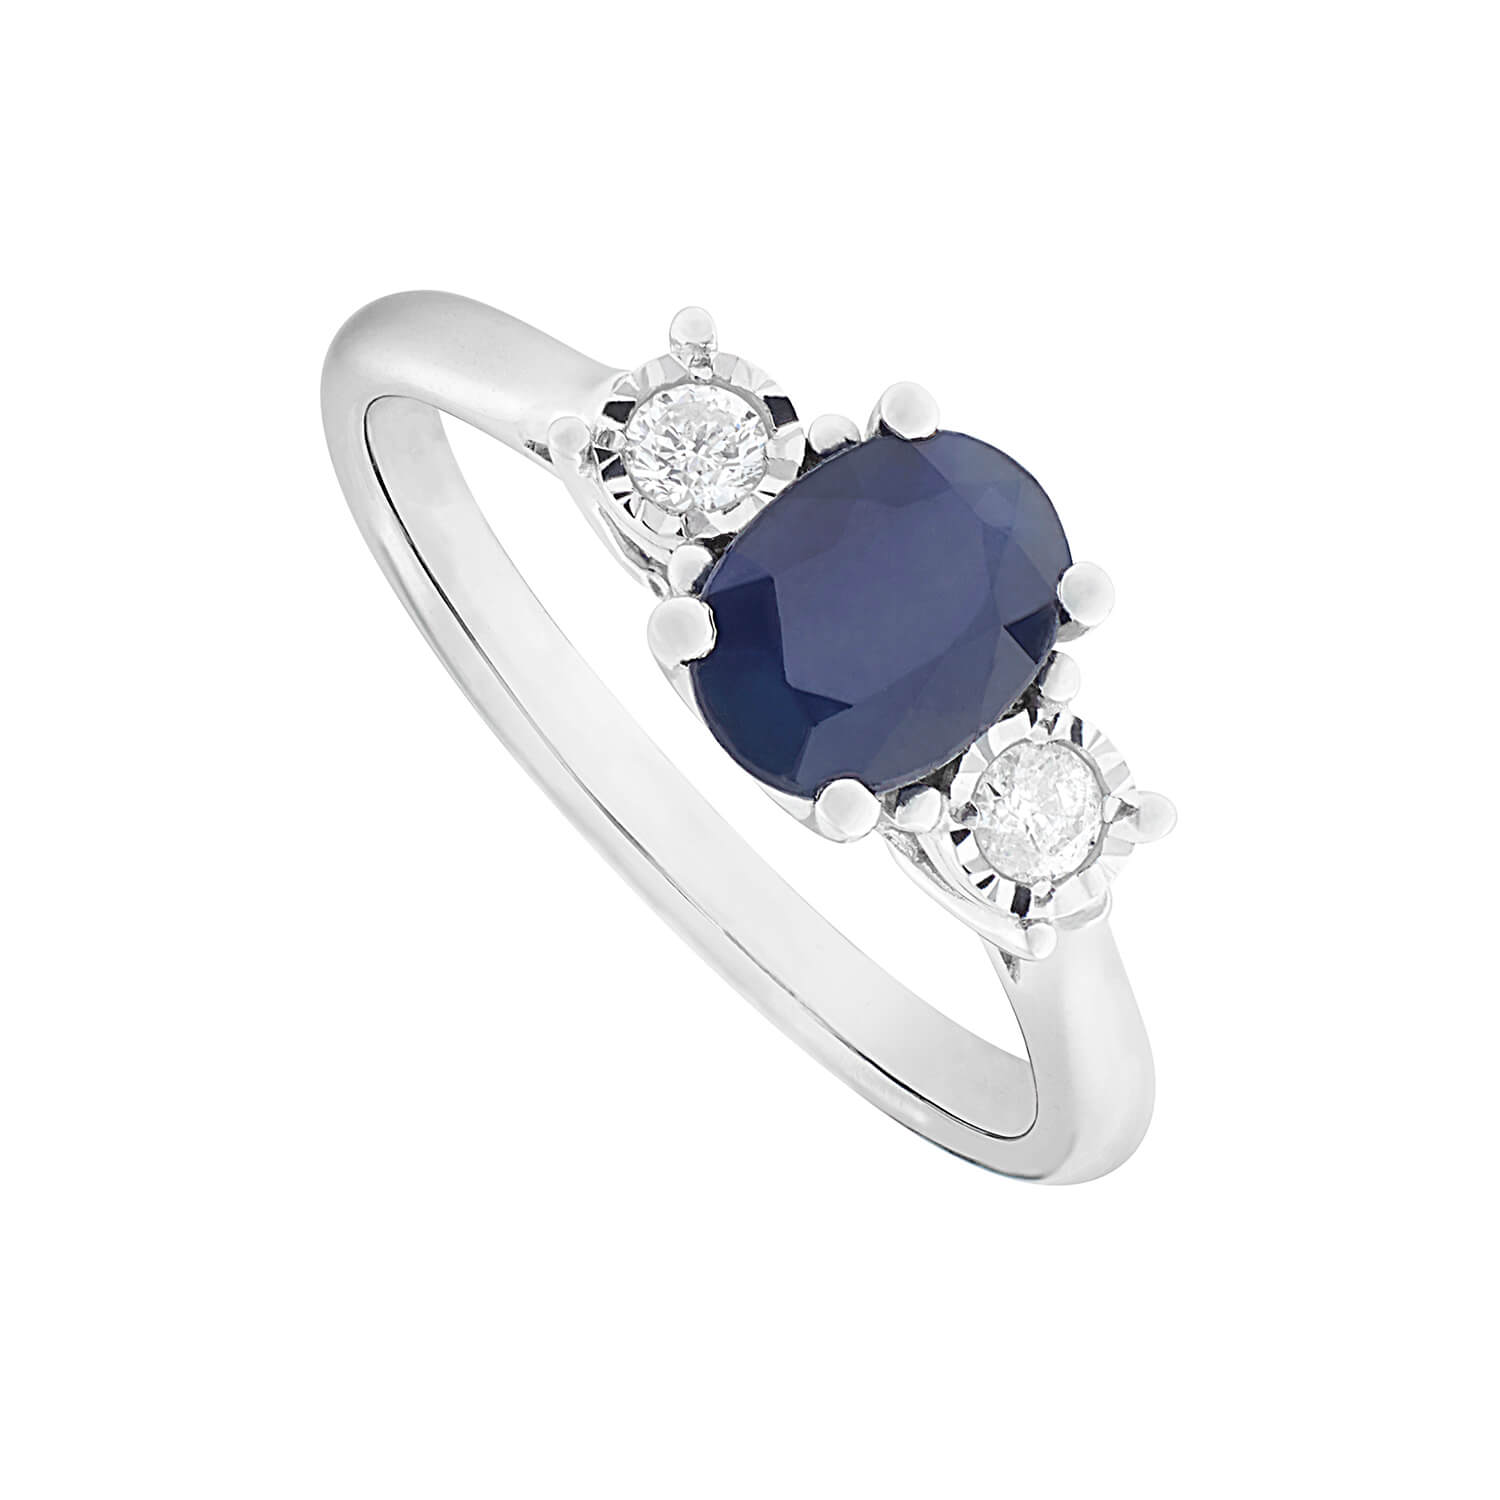 9ct white gold oval sapphire and diamond three stone ring